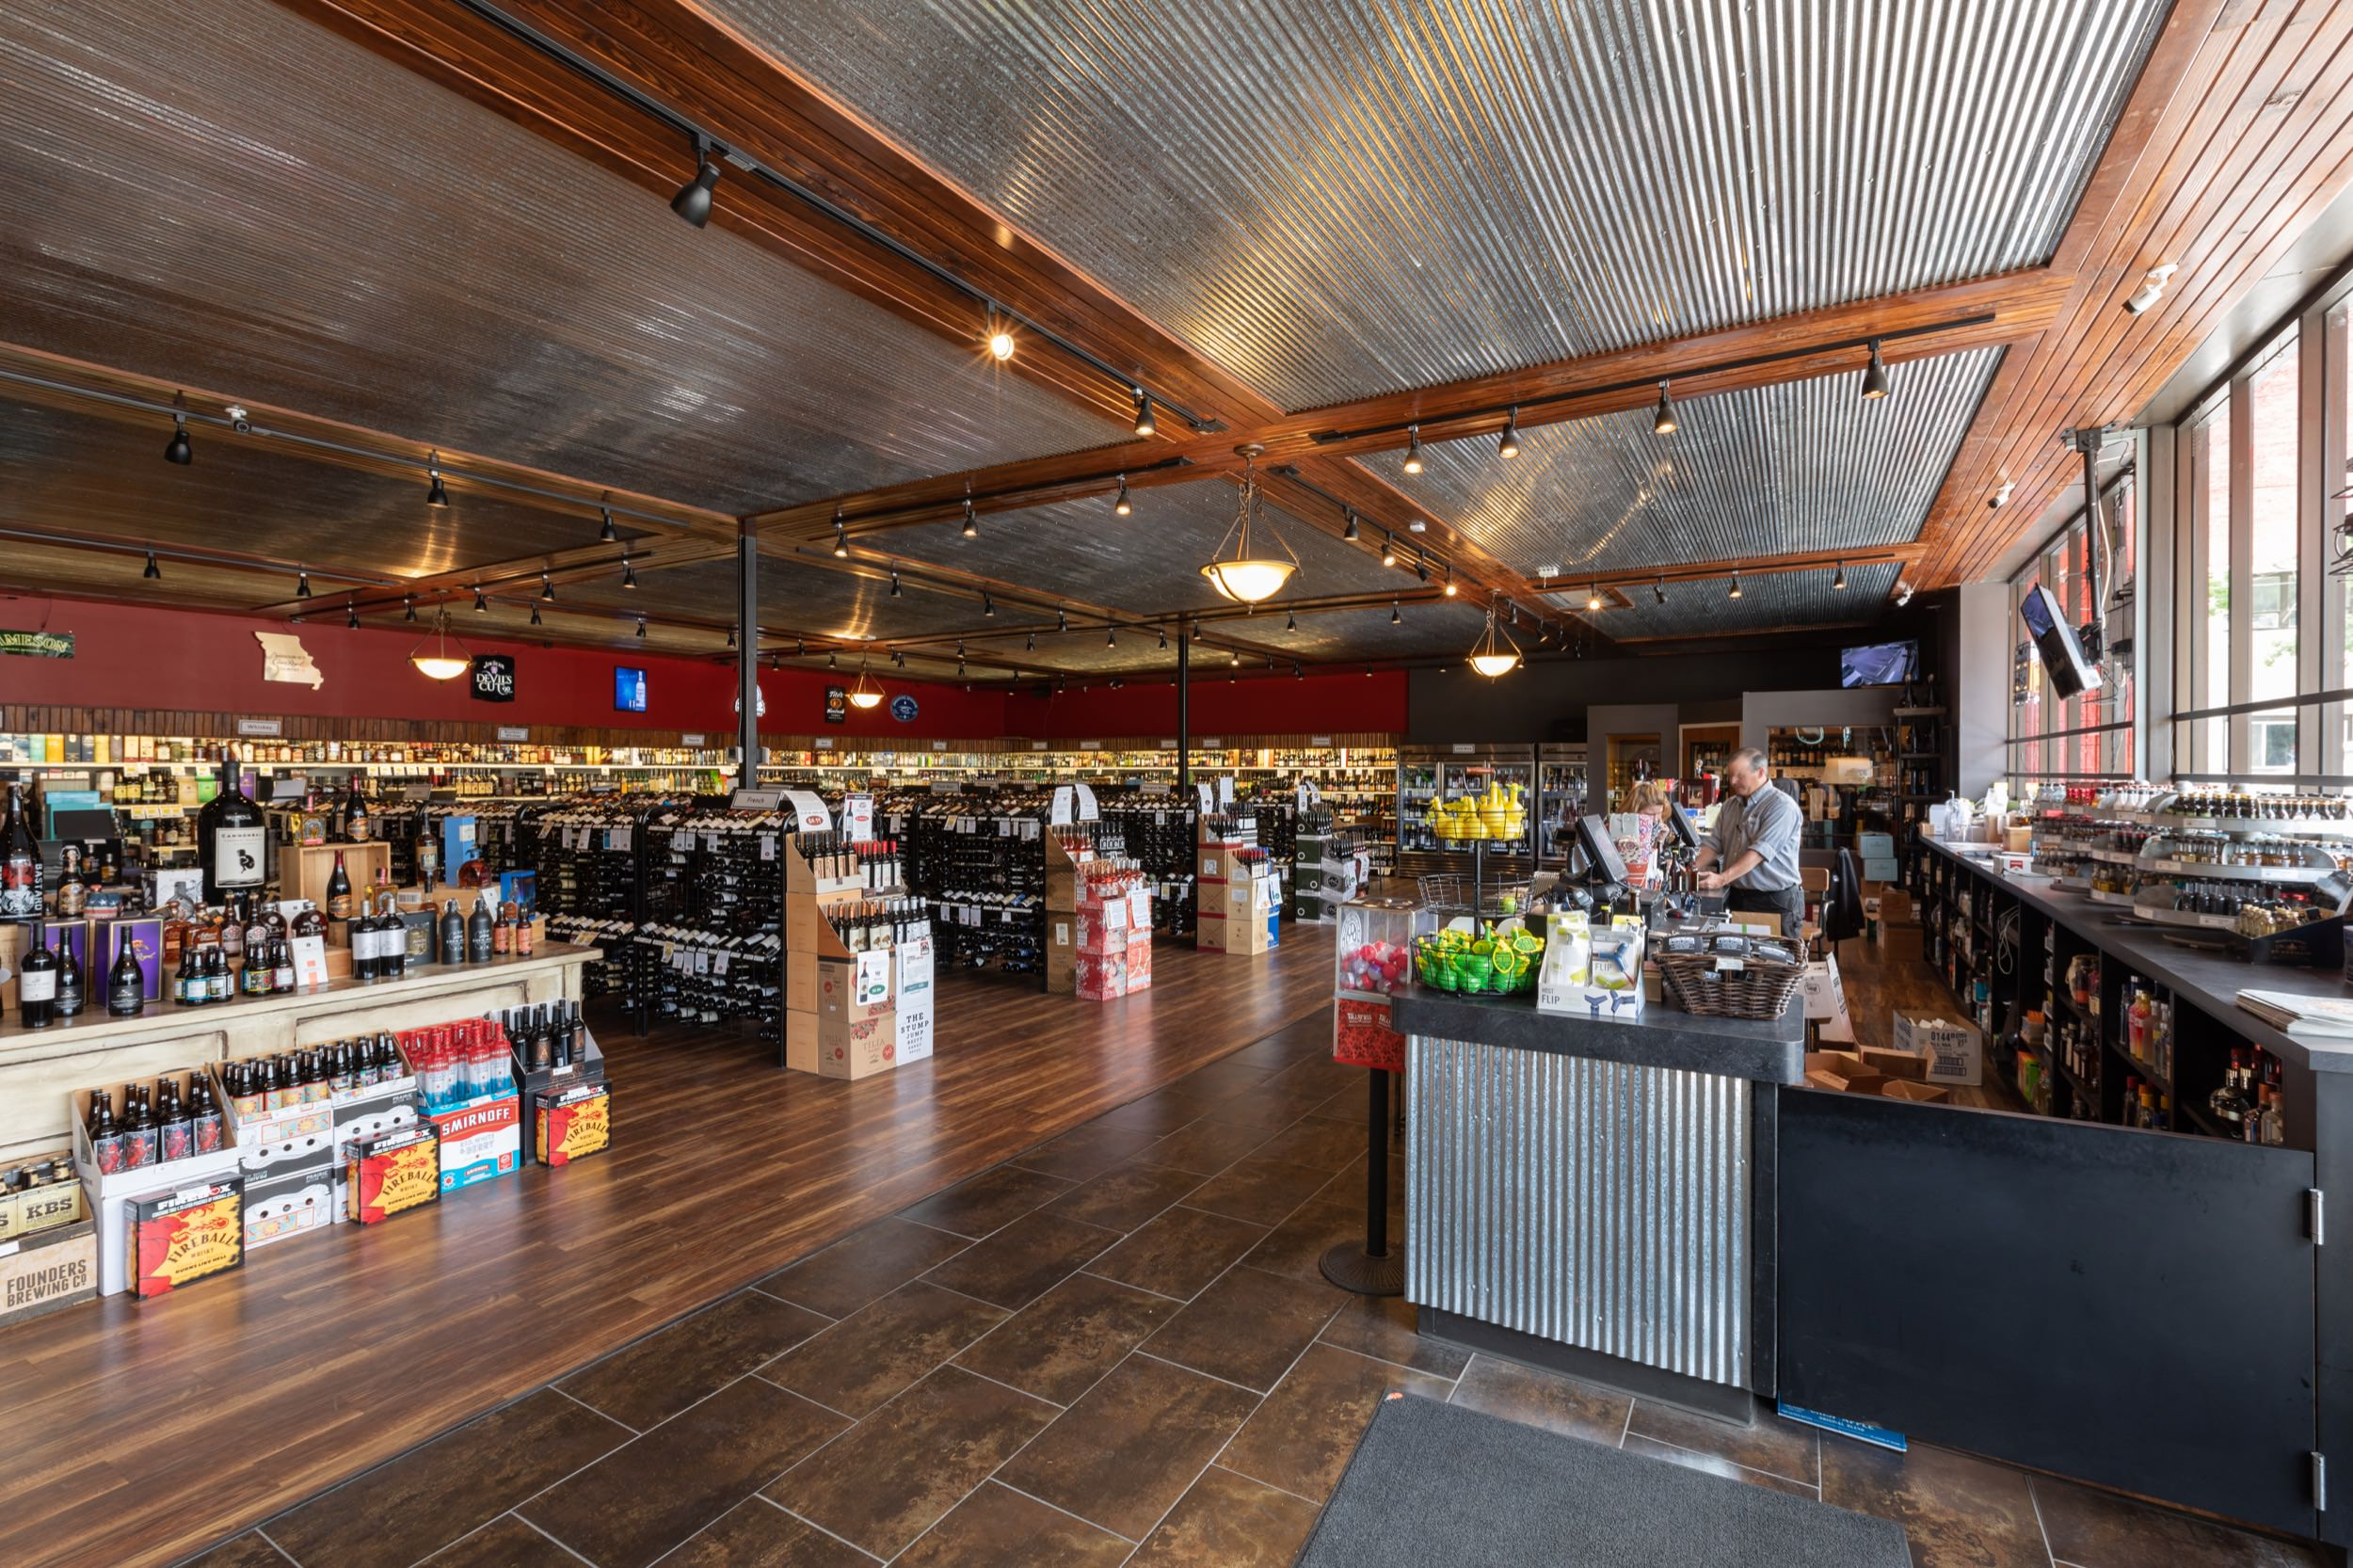 Retail space and checkout counter at Plaza Liquors